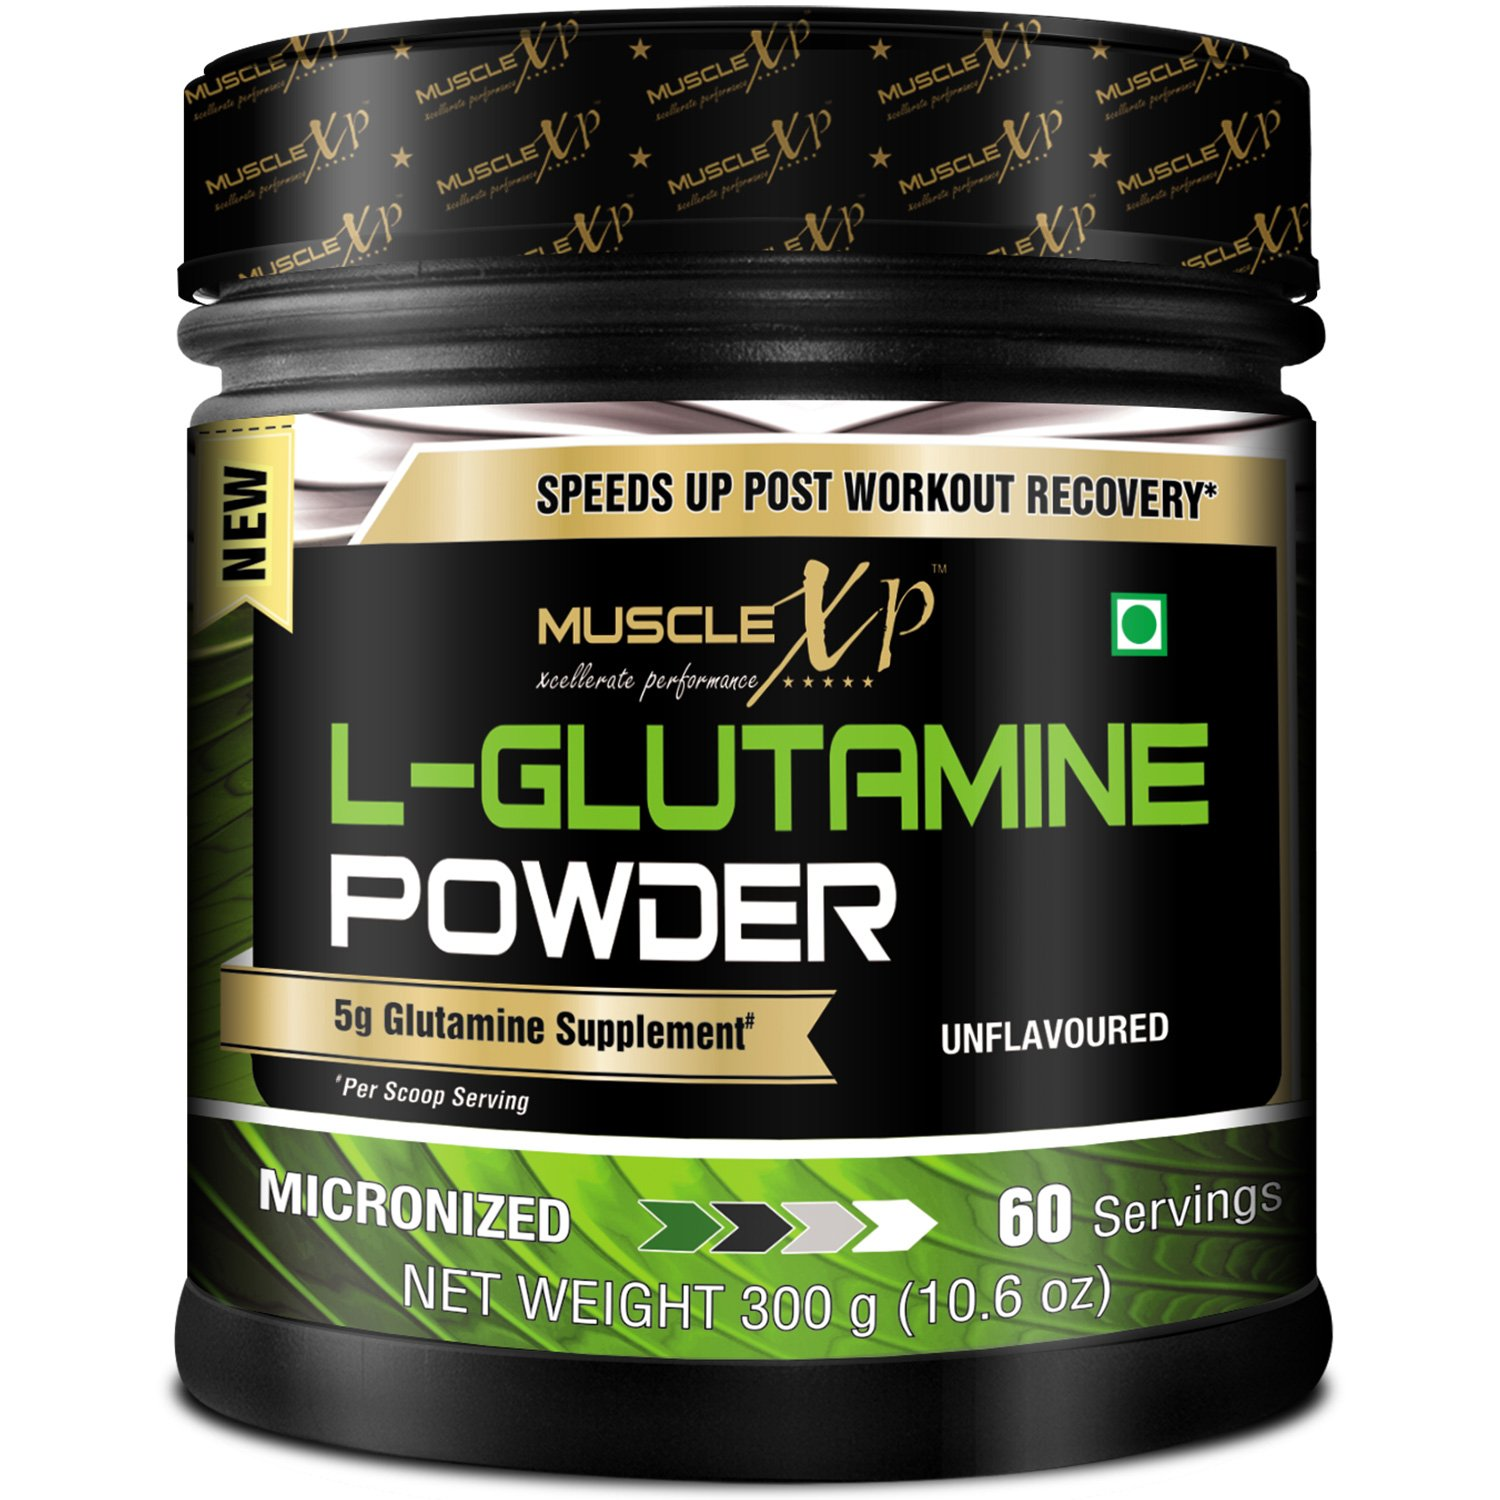 MuscleXP Micronized L-Glutamine Powder - 300Gm (10.6 Oz) Unflavored